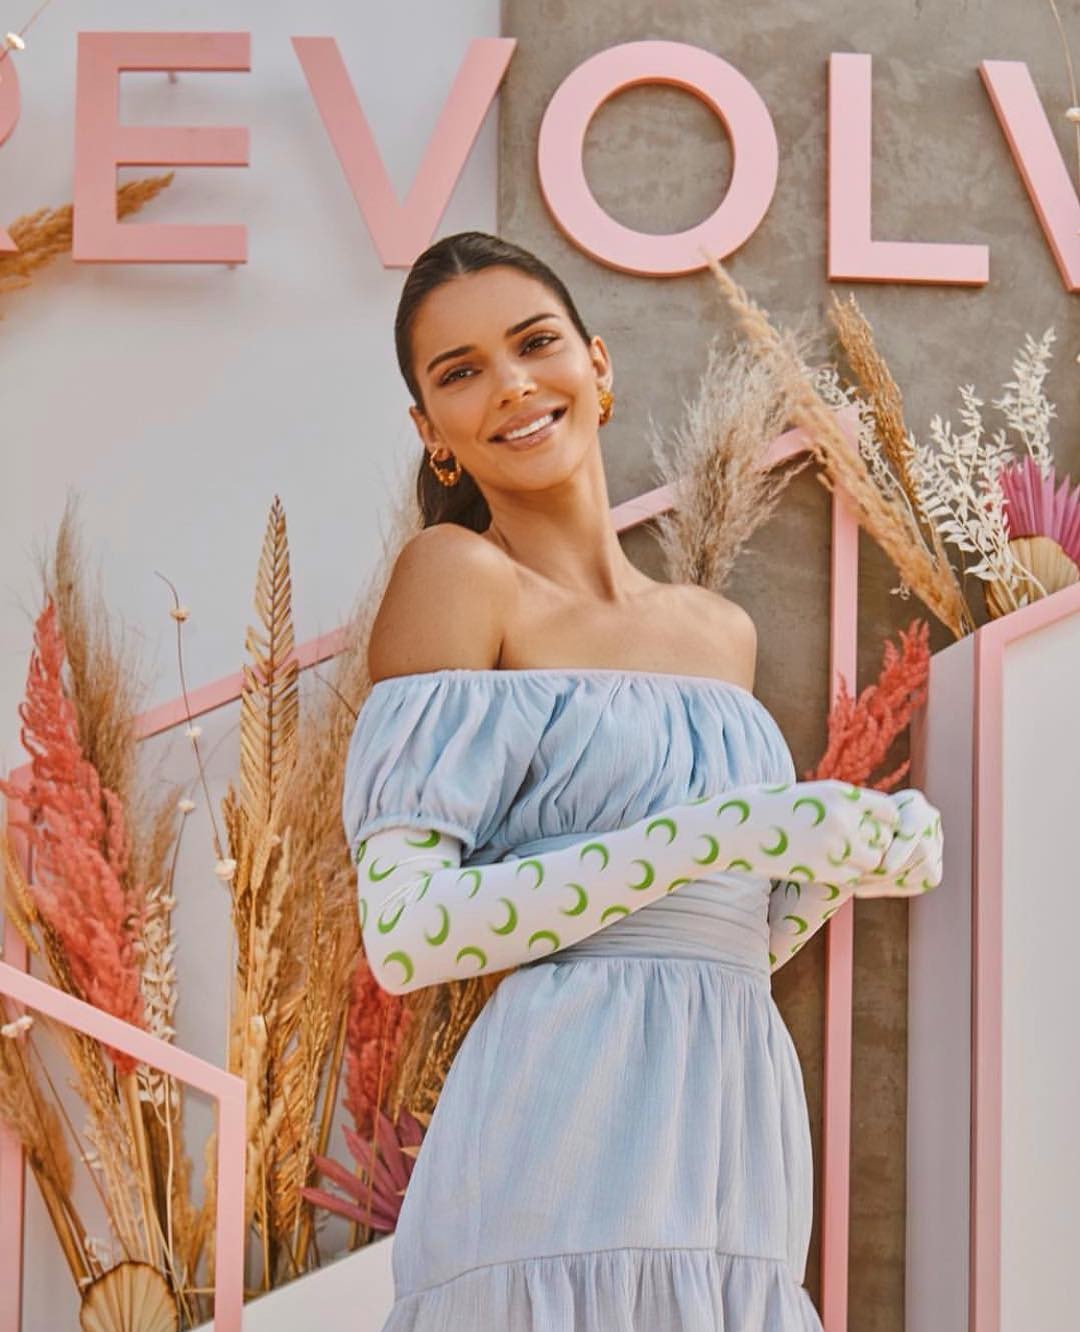 Kendall Jenner - Jordyn Woods 'visibly uncomfortable' upon meeting Kendall Jenner